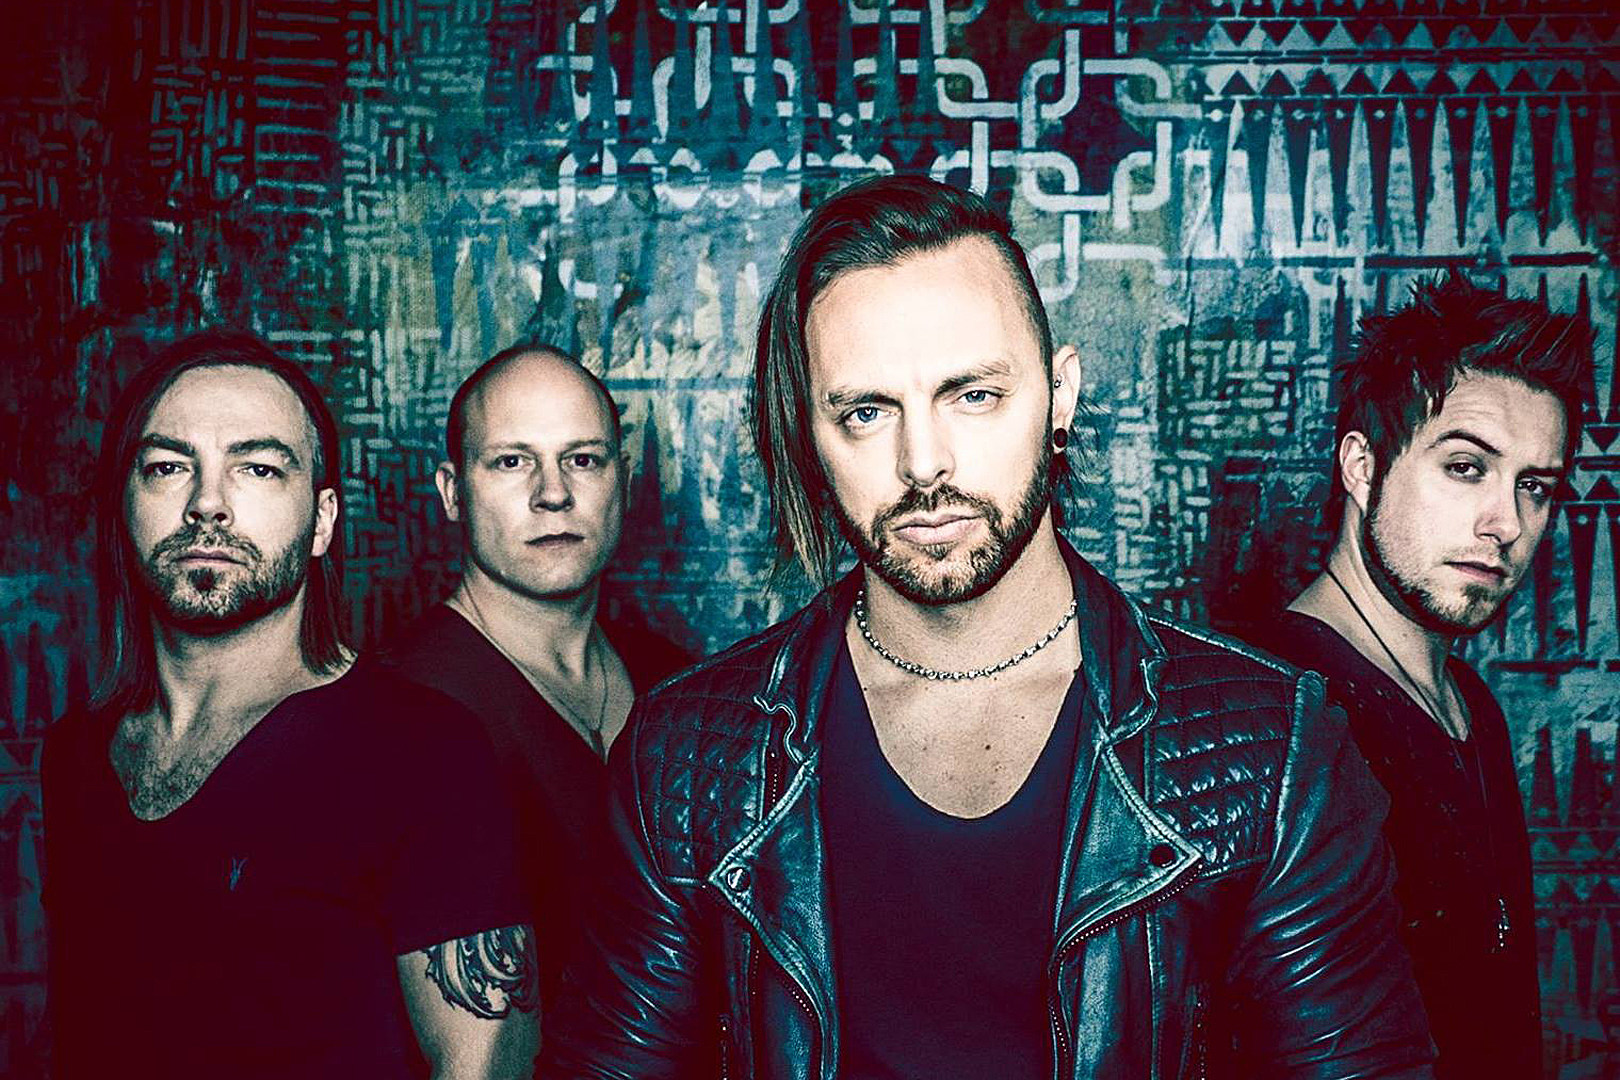 Bullet for My Valentine Move on From the Darkness in 'Over It' Video